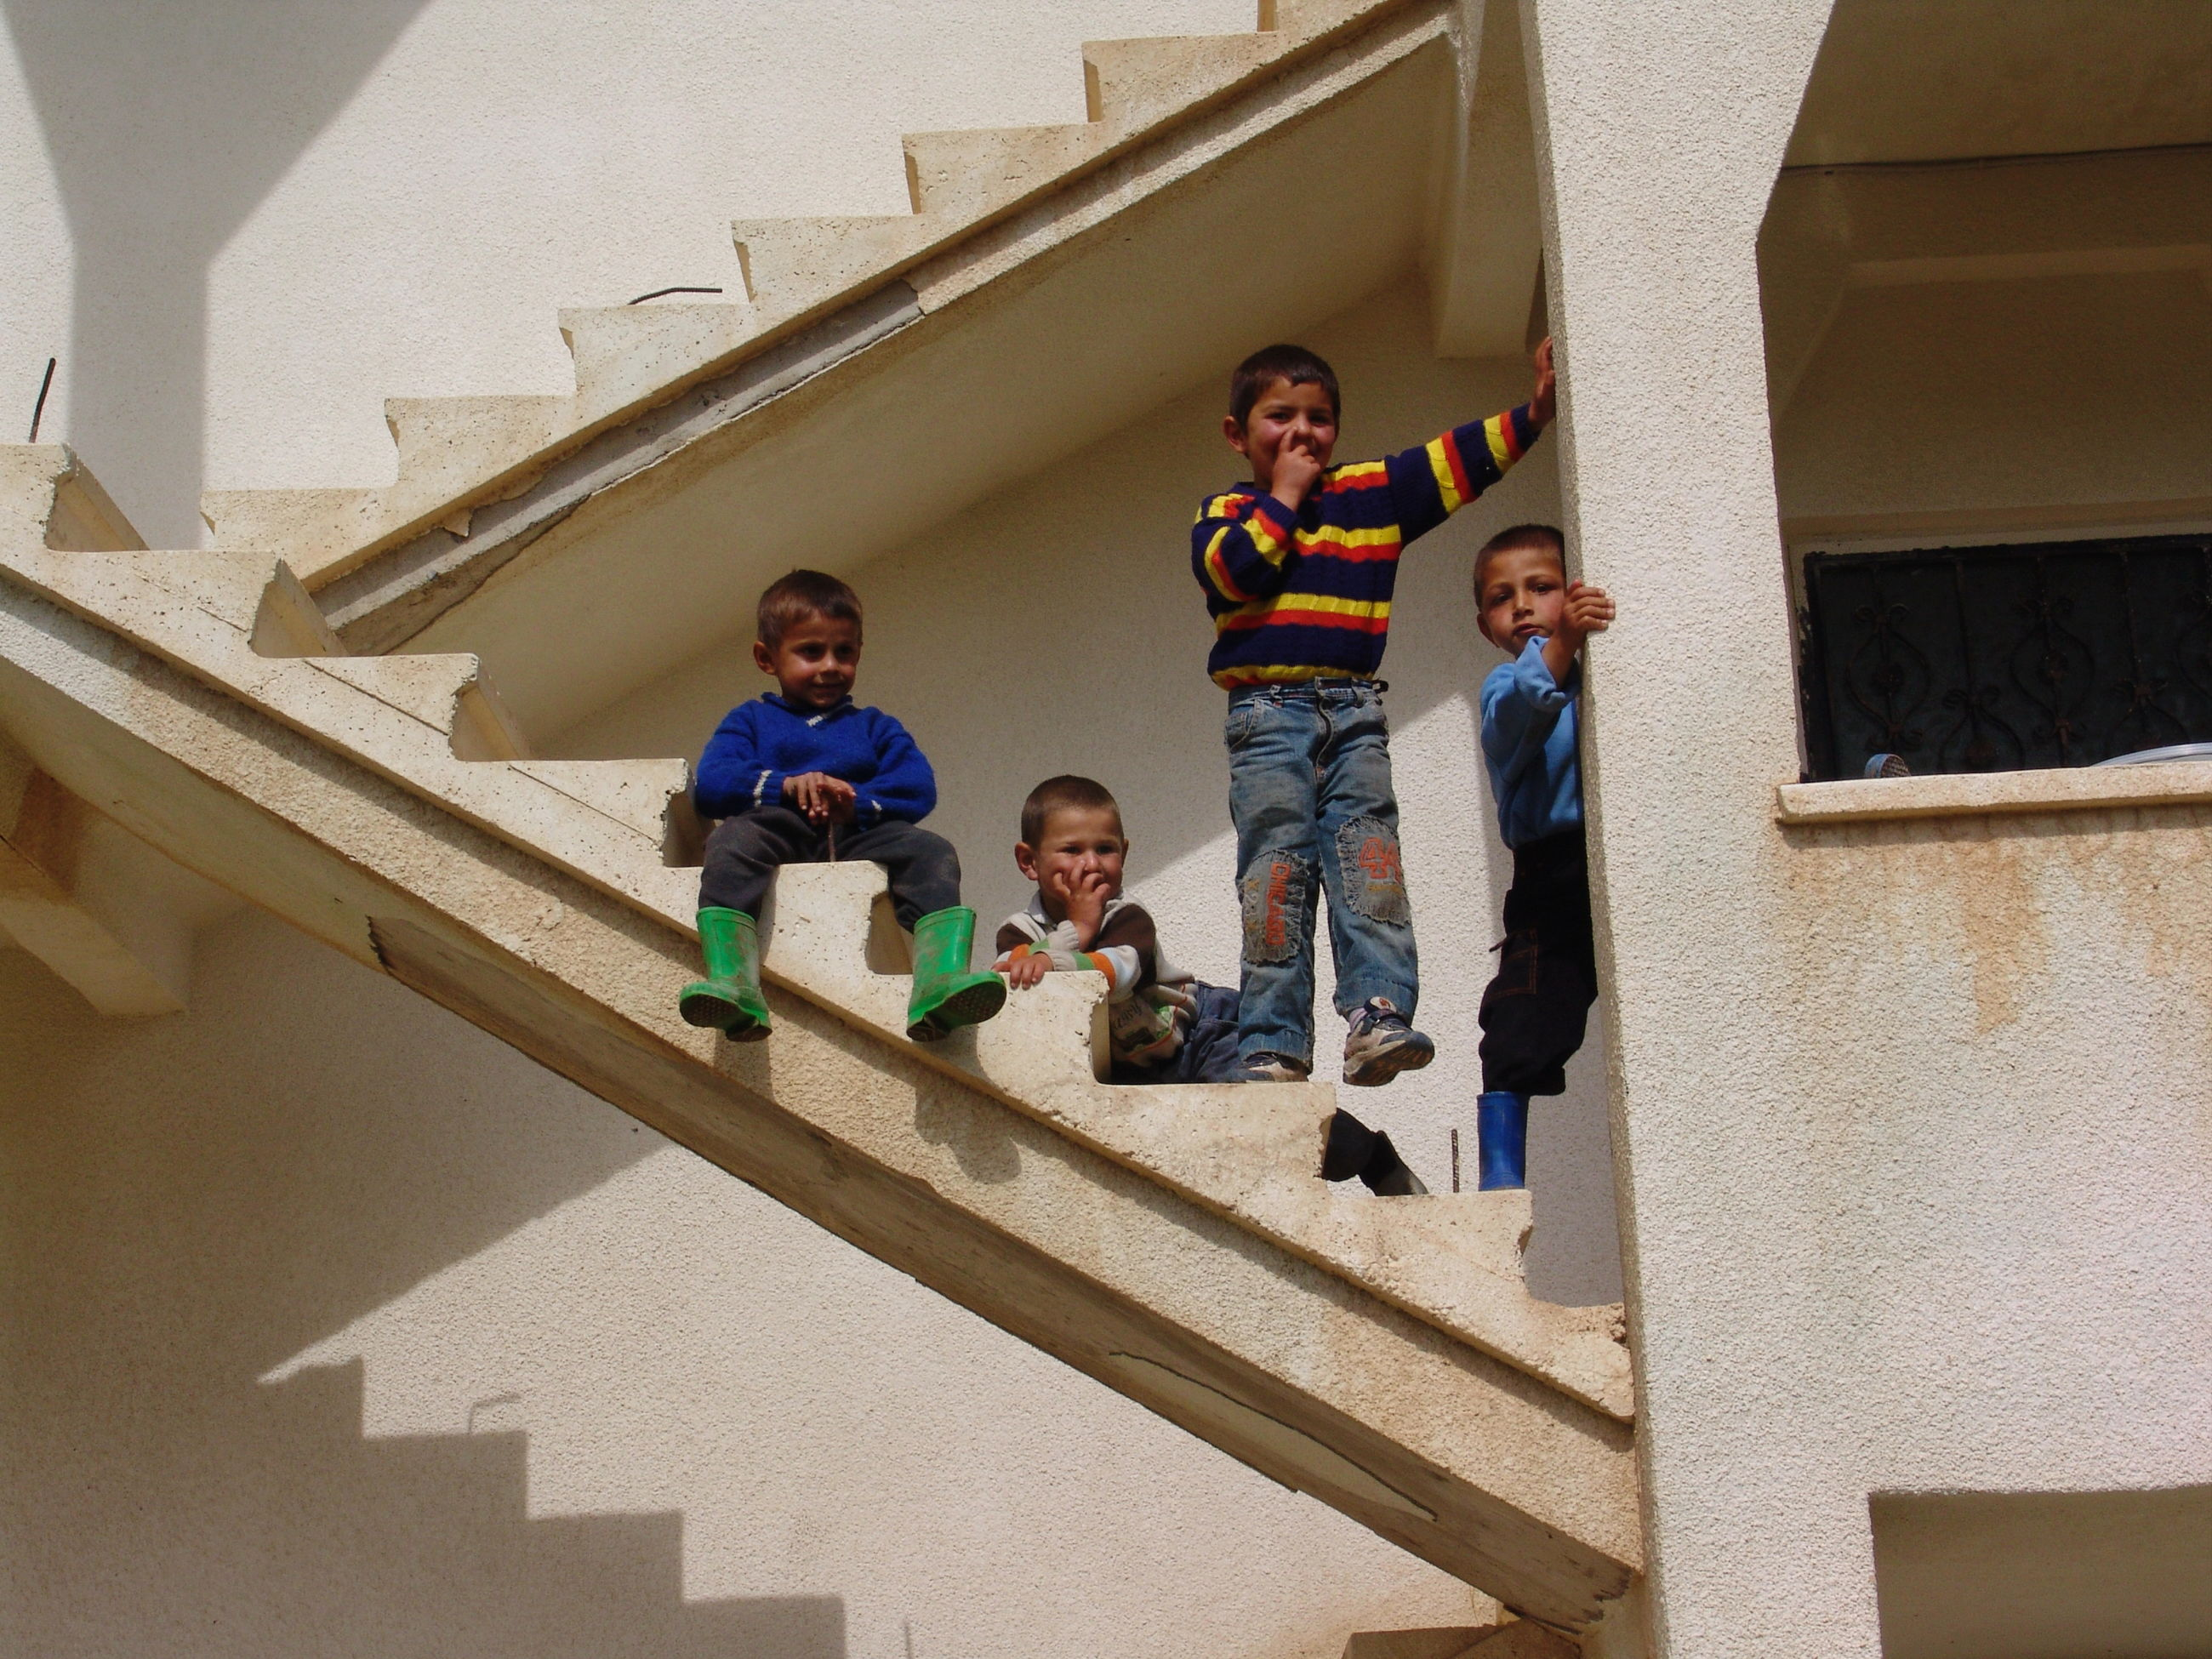 childhood, steps, boys, staircase, steps and staircases, elementary age, leisure activity, full length, standing, built structure, real people, front view, togetherness, smiling, architecture, portrait, mature men, looking at camera, lifestyles, casual clothing, day, son, girls, low angle view, building exterior, happiness, playing, outdoors, bonding, men, young women, child, cardboard box, young adult, people